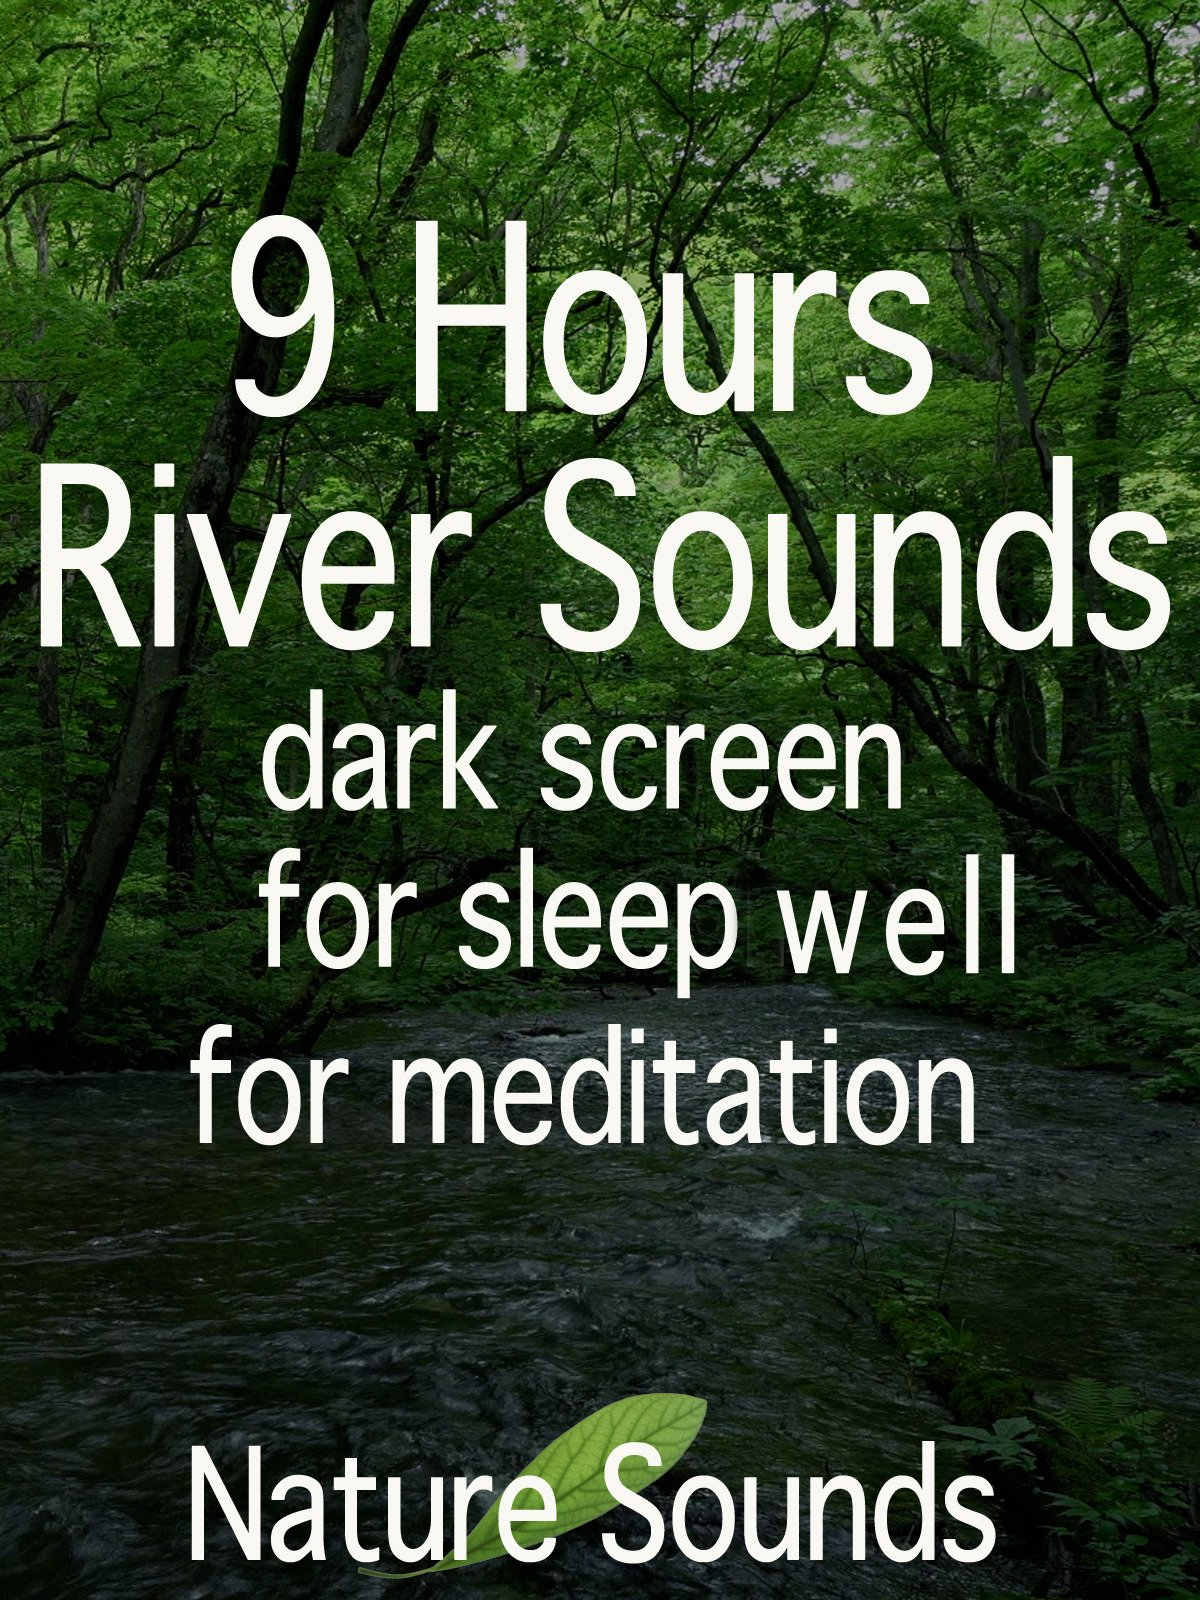 9 Hours River Sounds, dark screen, for sleep well, for meditation